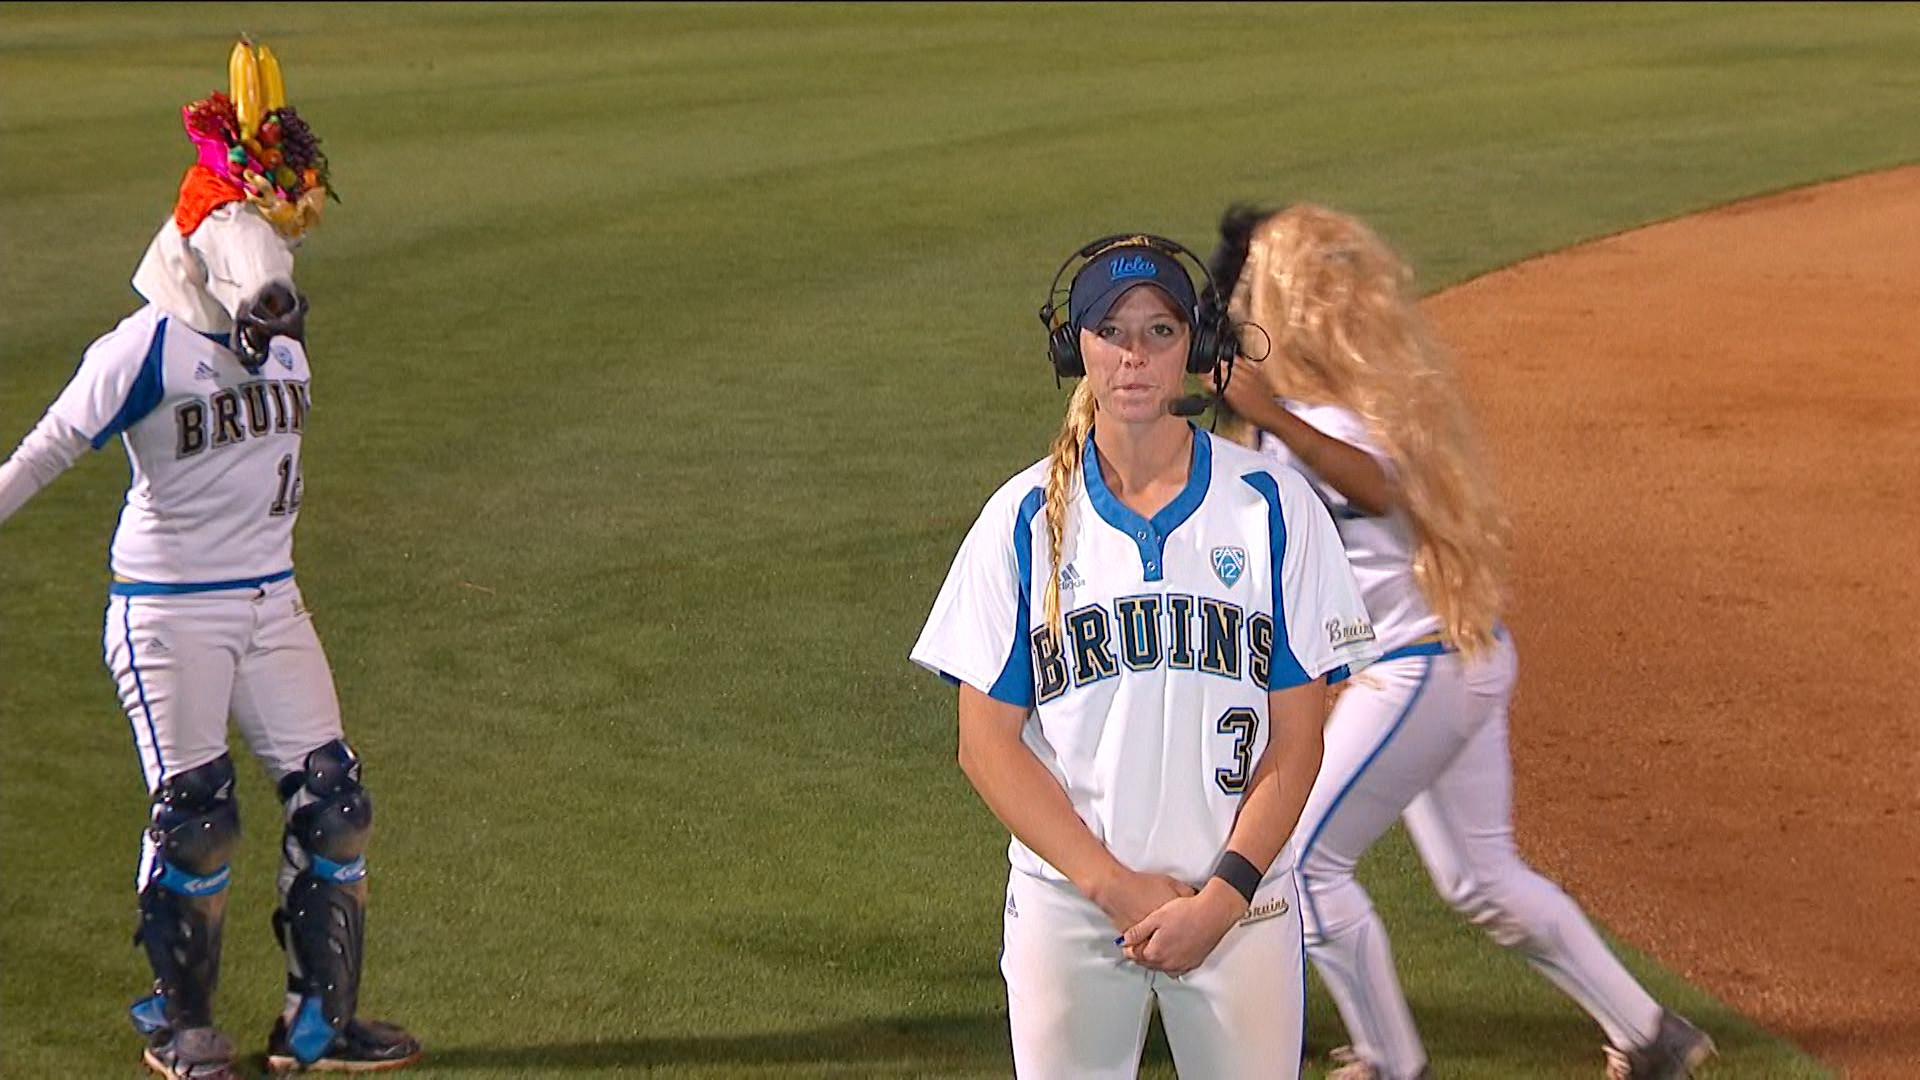 UCLA softball's Ally Carda on big game: 'I tried to keep it simple at the  plate' | Pac-12